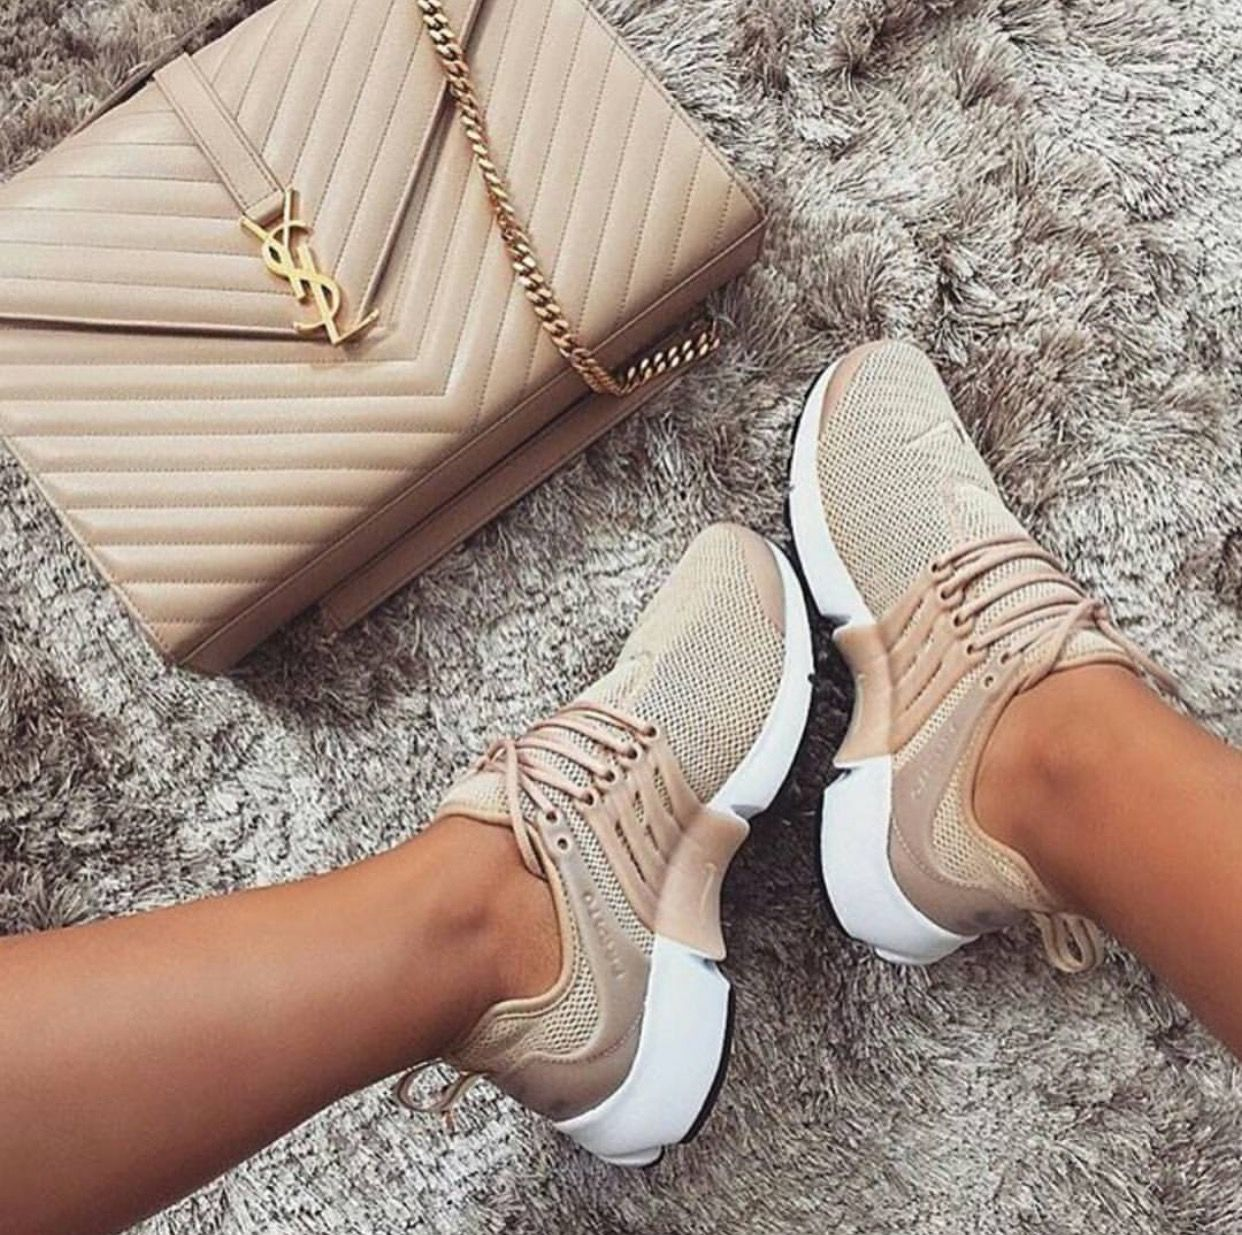 Adidas Women Shoes - Adidas Trainers Neutral - We reveal the news in  sneakers for spring summer 2017